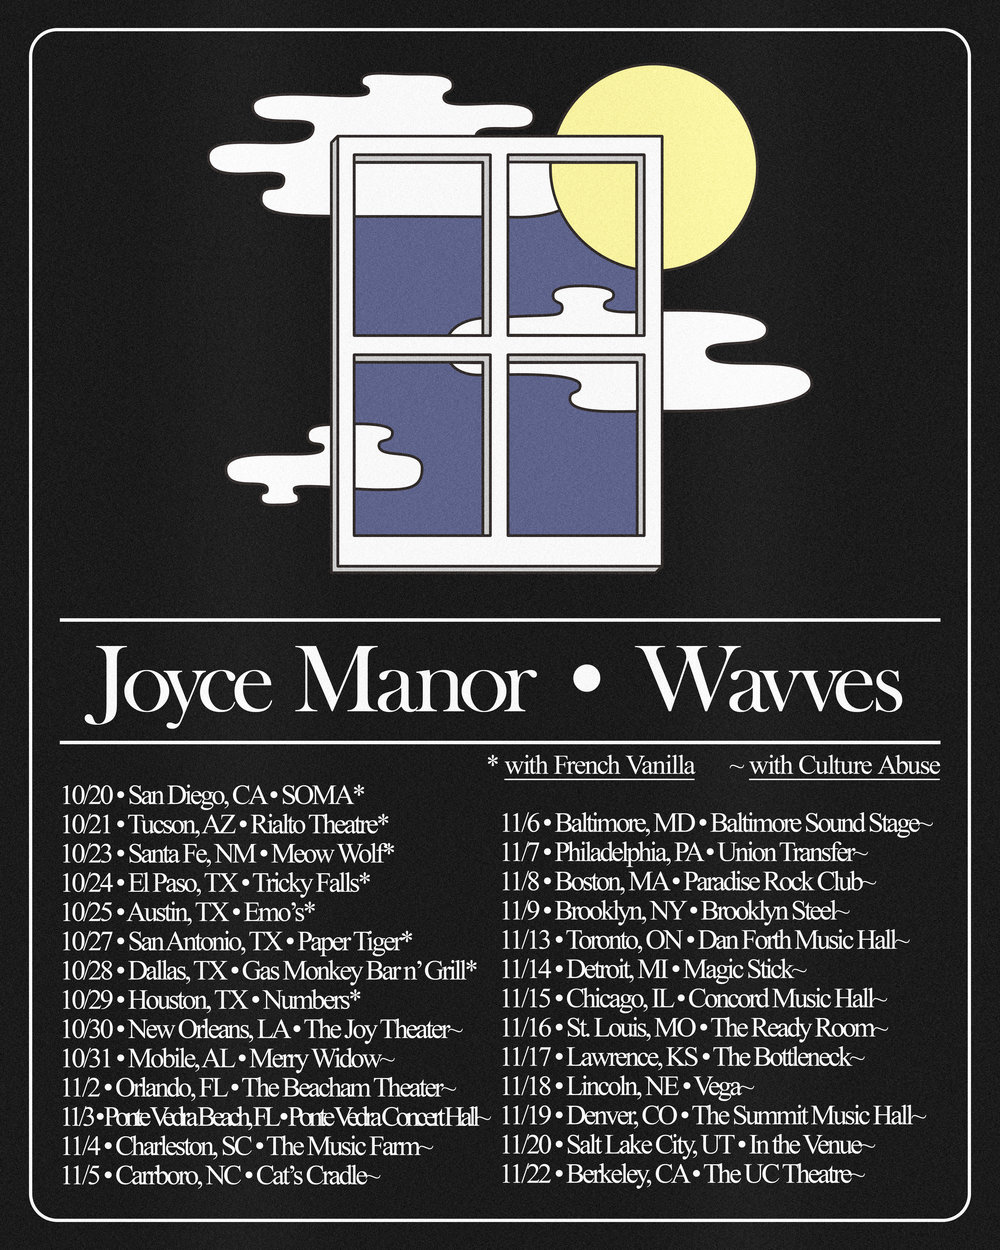 Tour poster for Joyce Manor + Wavves